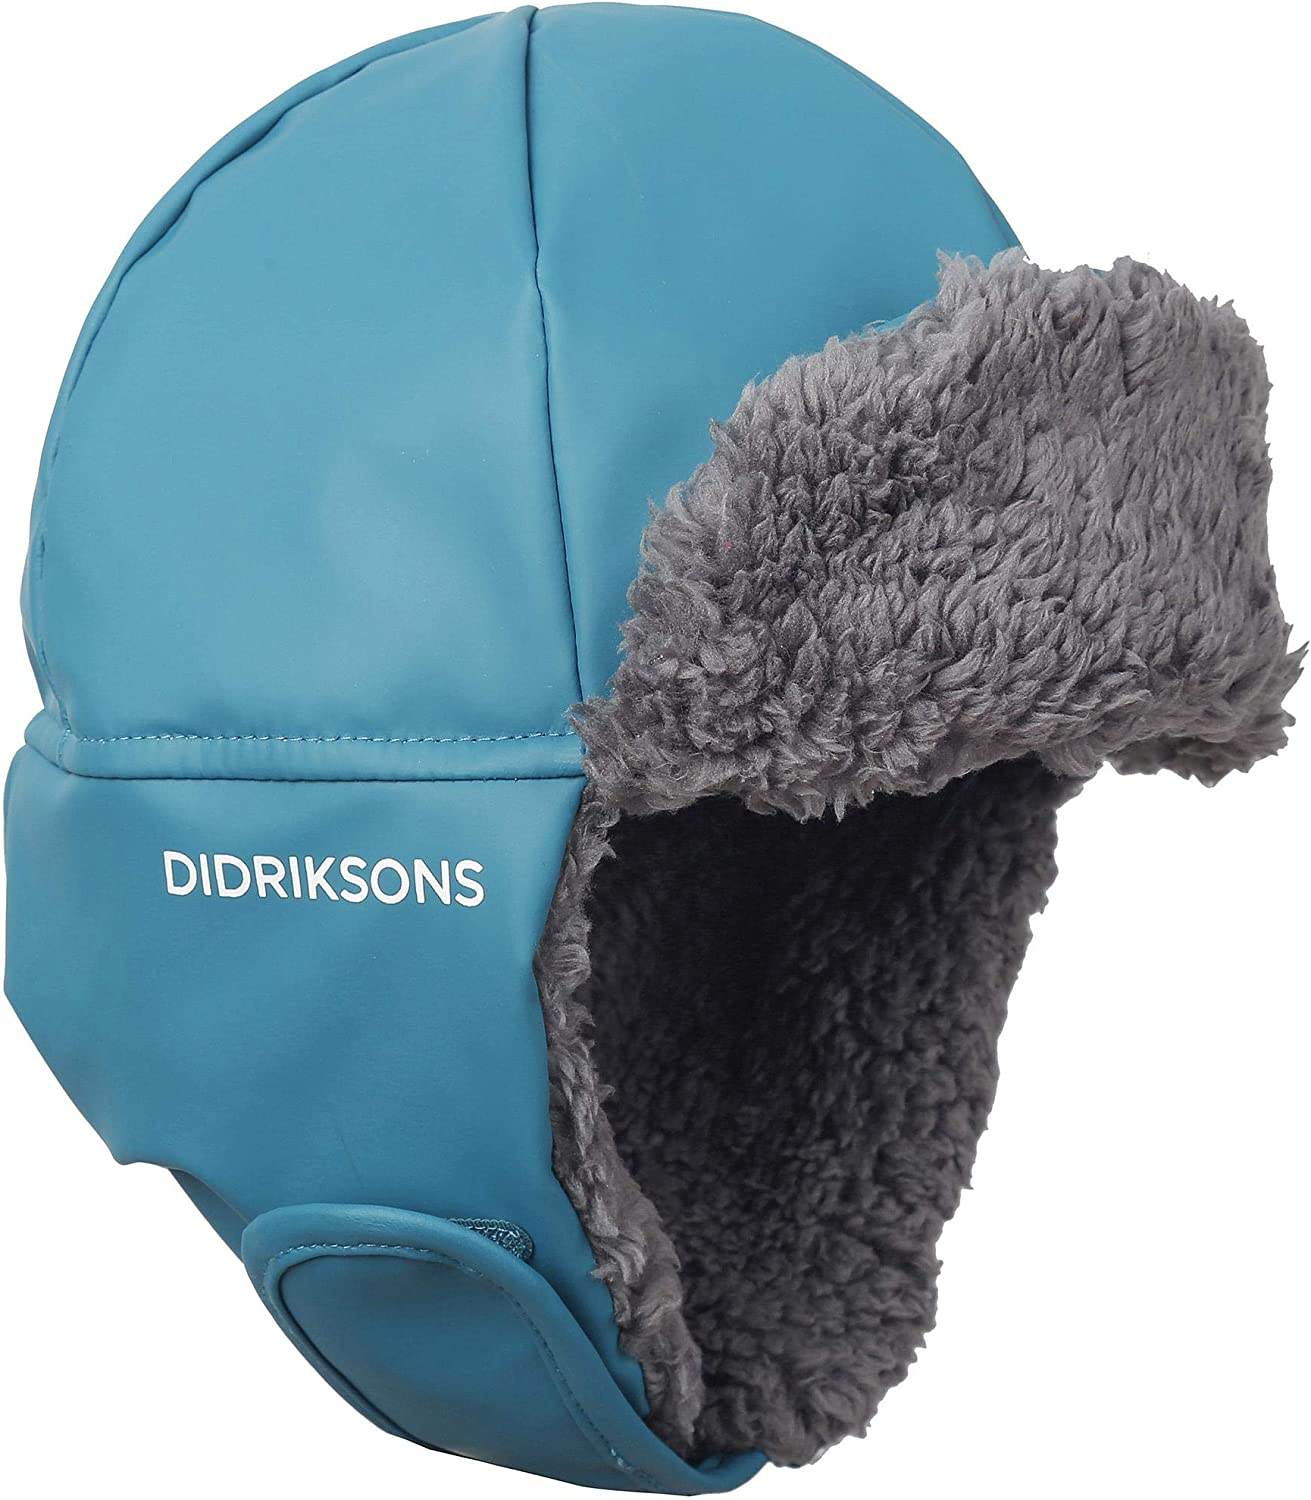 Didriksons Biggles 2 Kids Galon Hat